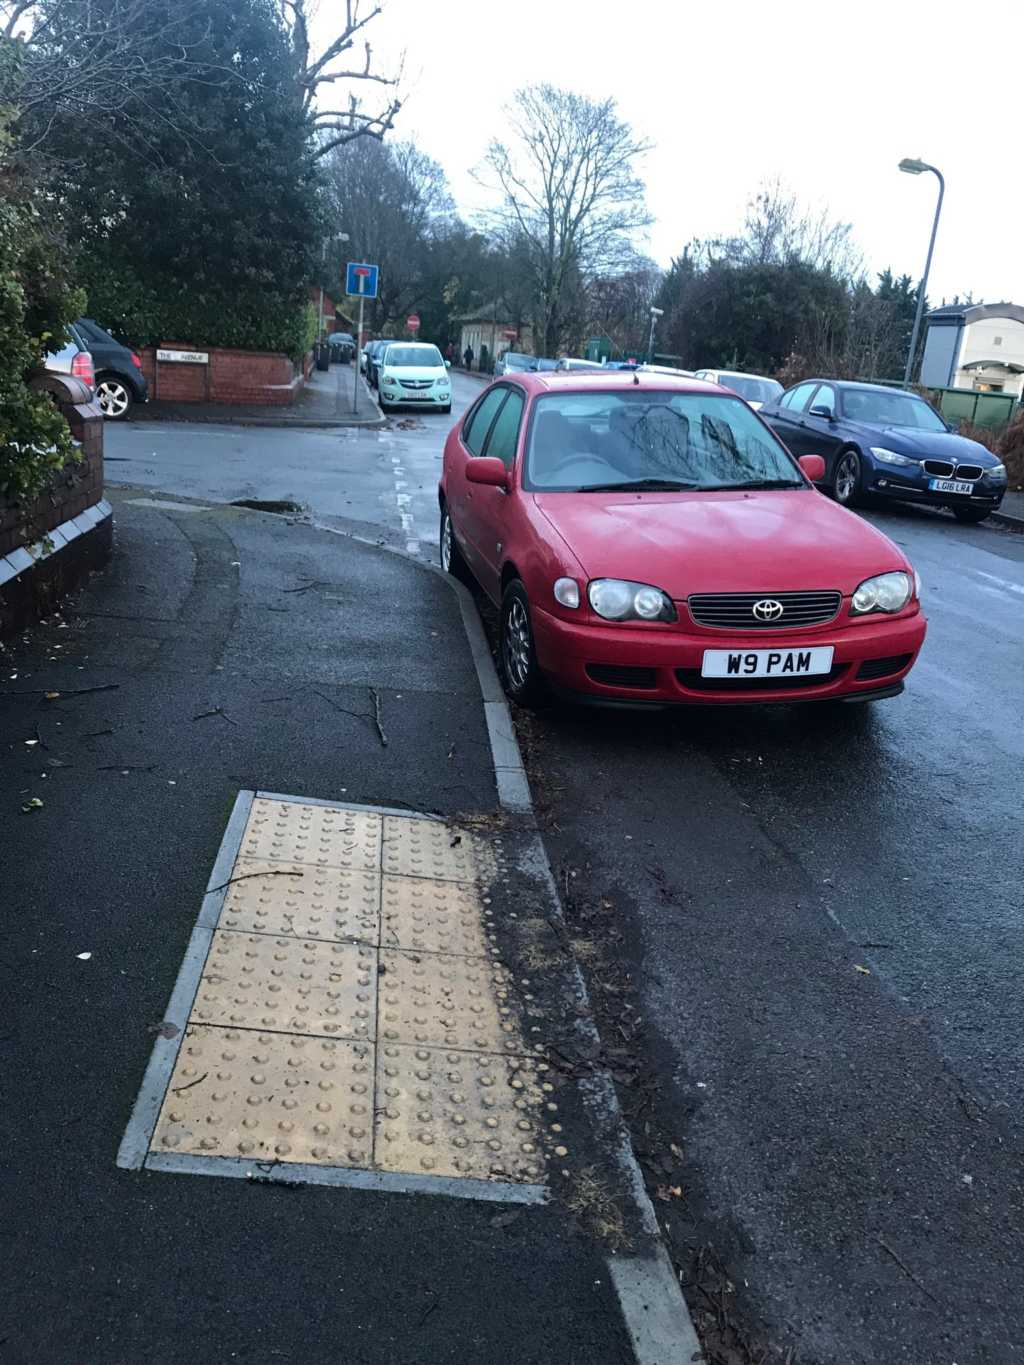 W9 PAM is an Inconsiderate Parker